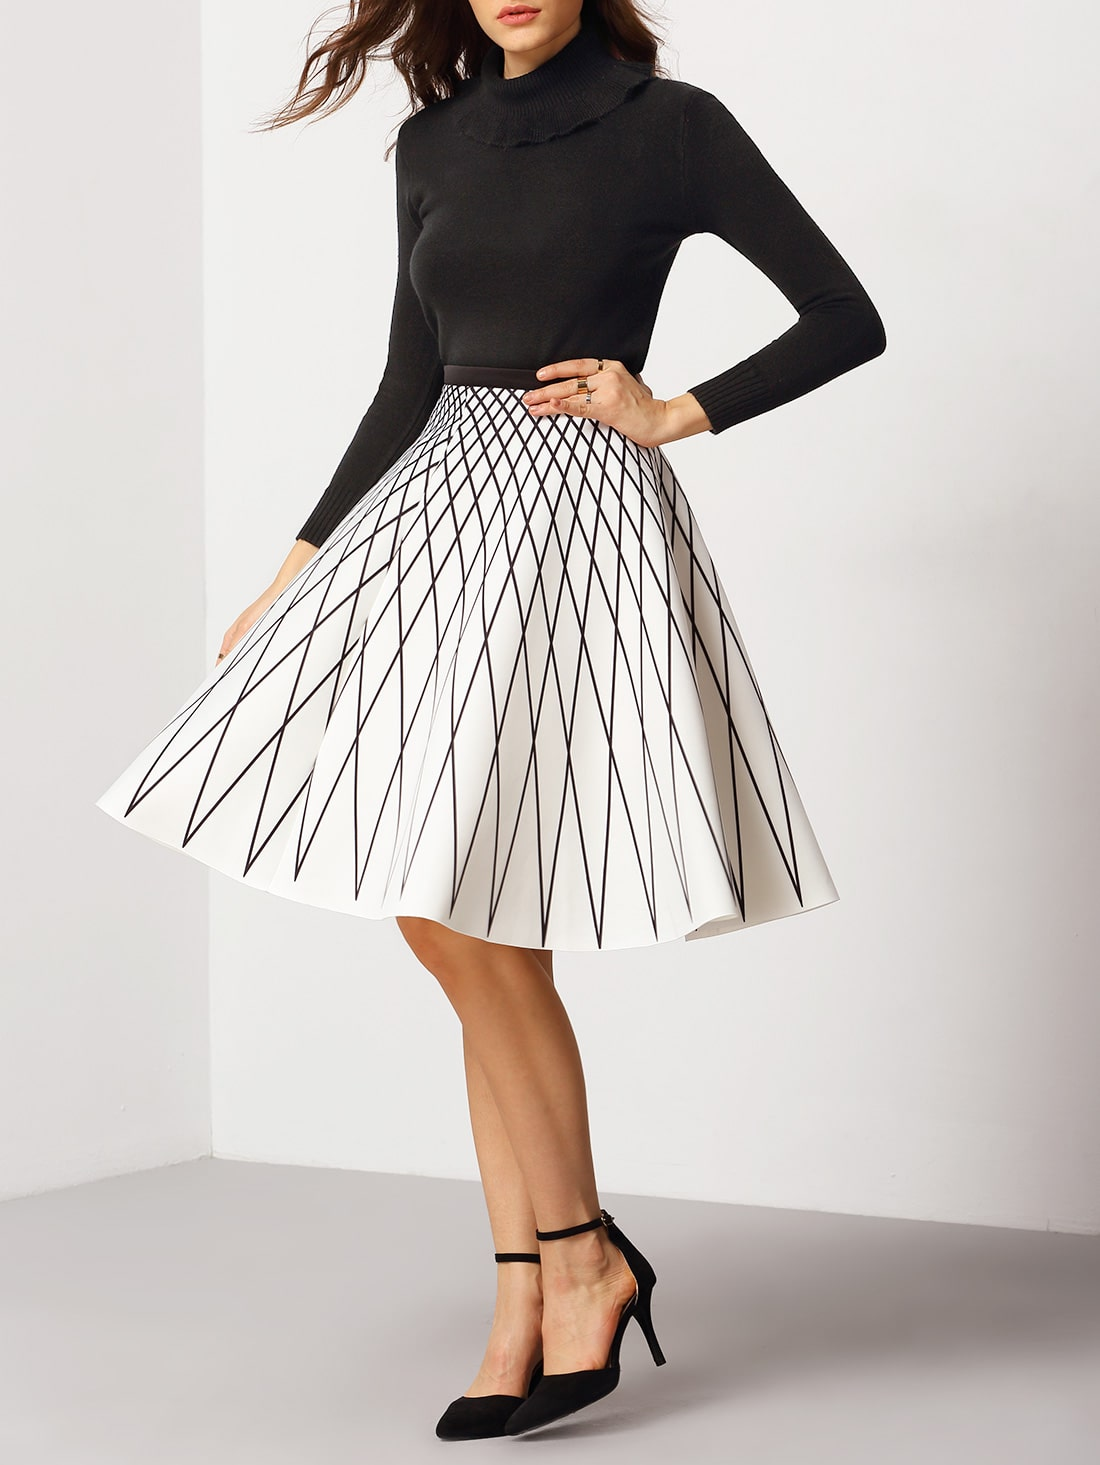 White High Waist Geometric Print Flare Skirt